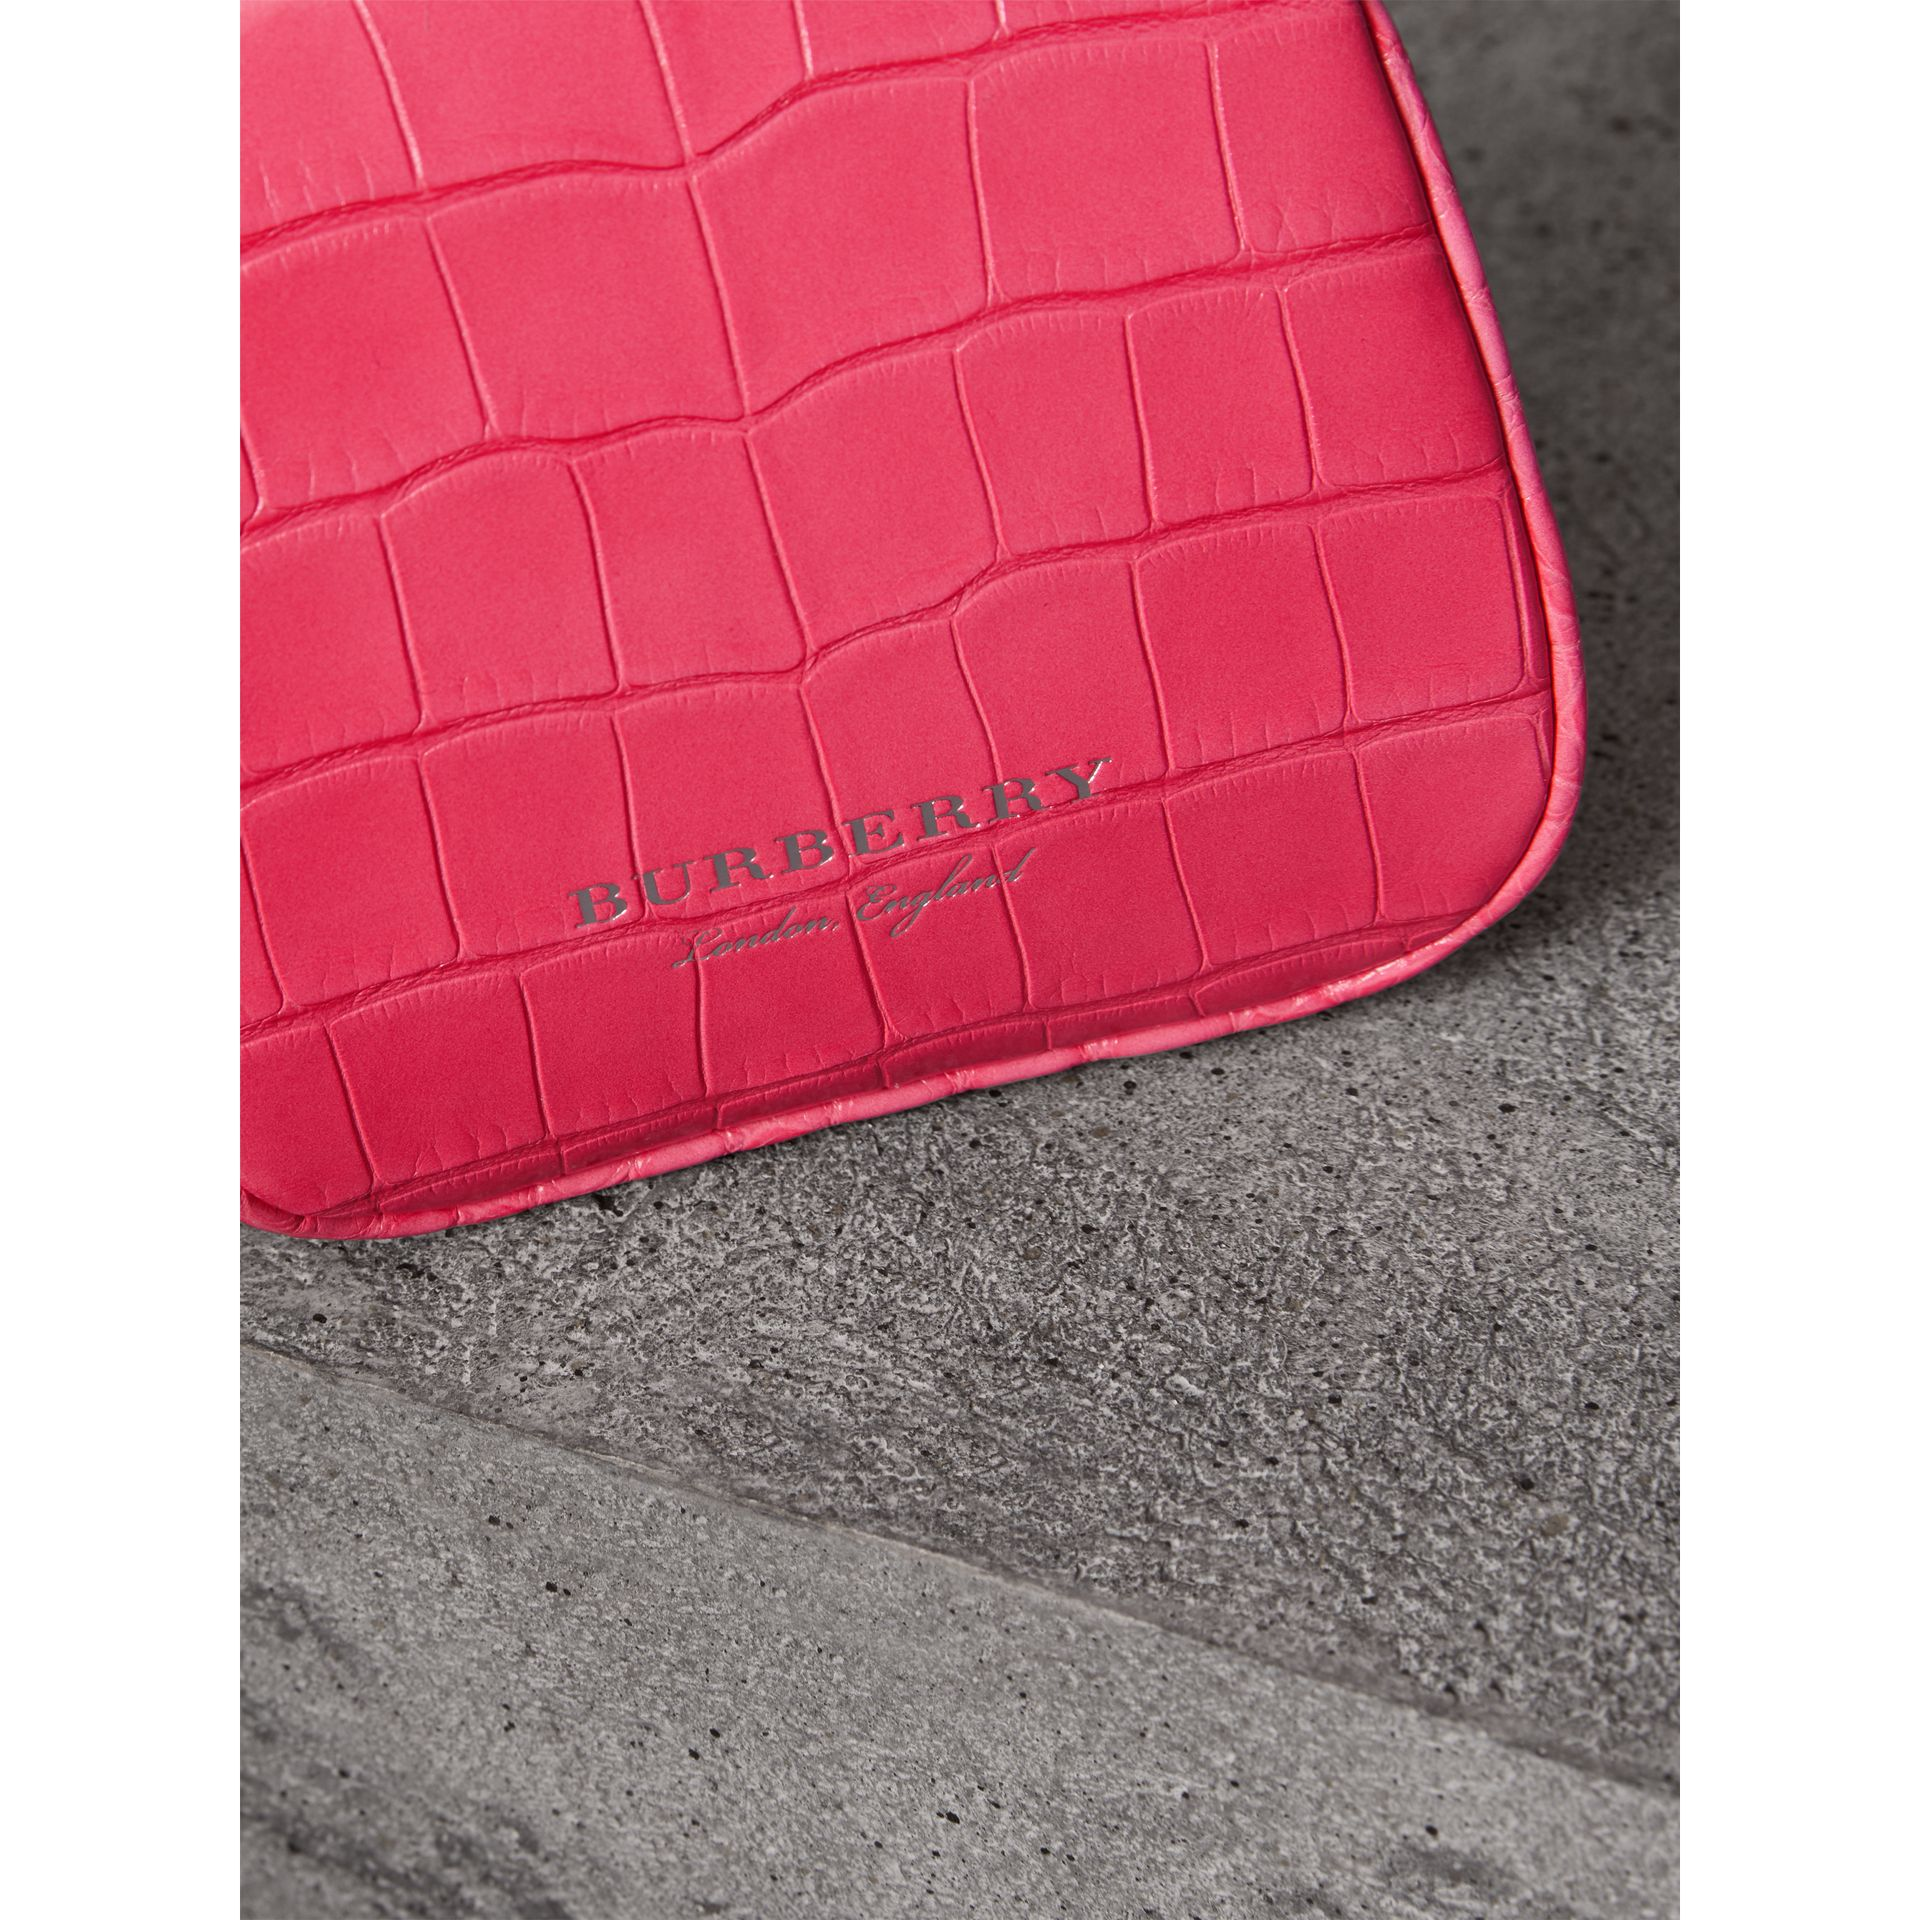 Mini Alligator Frame Bag in Neon Pink - Women | Burberry - gallery image 1